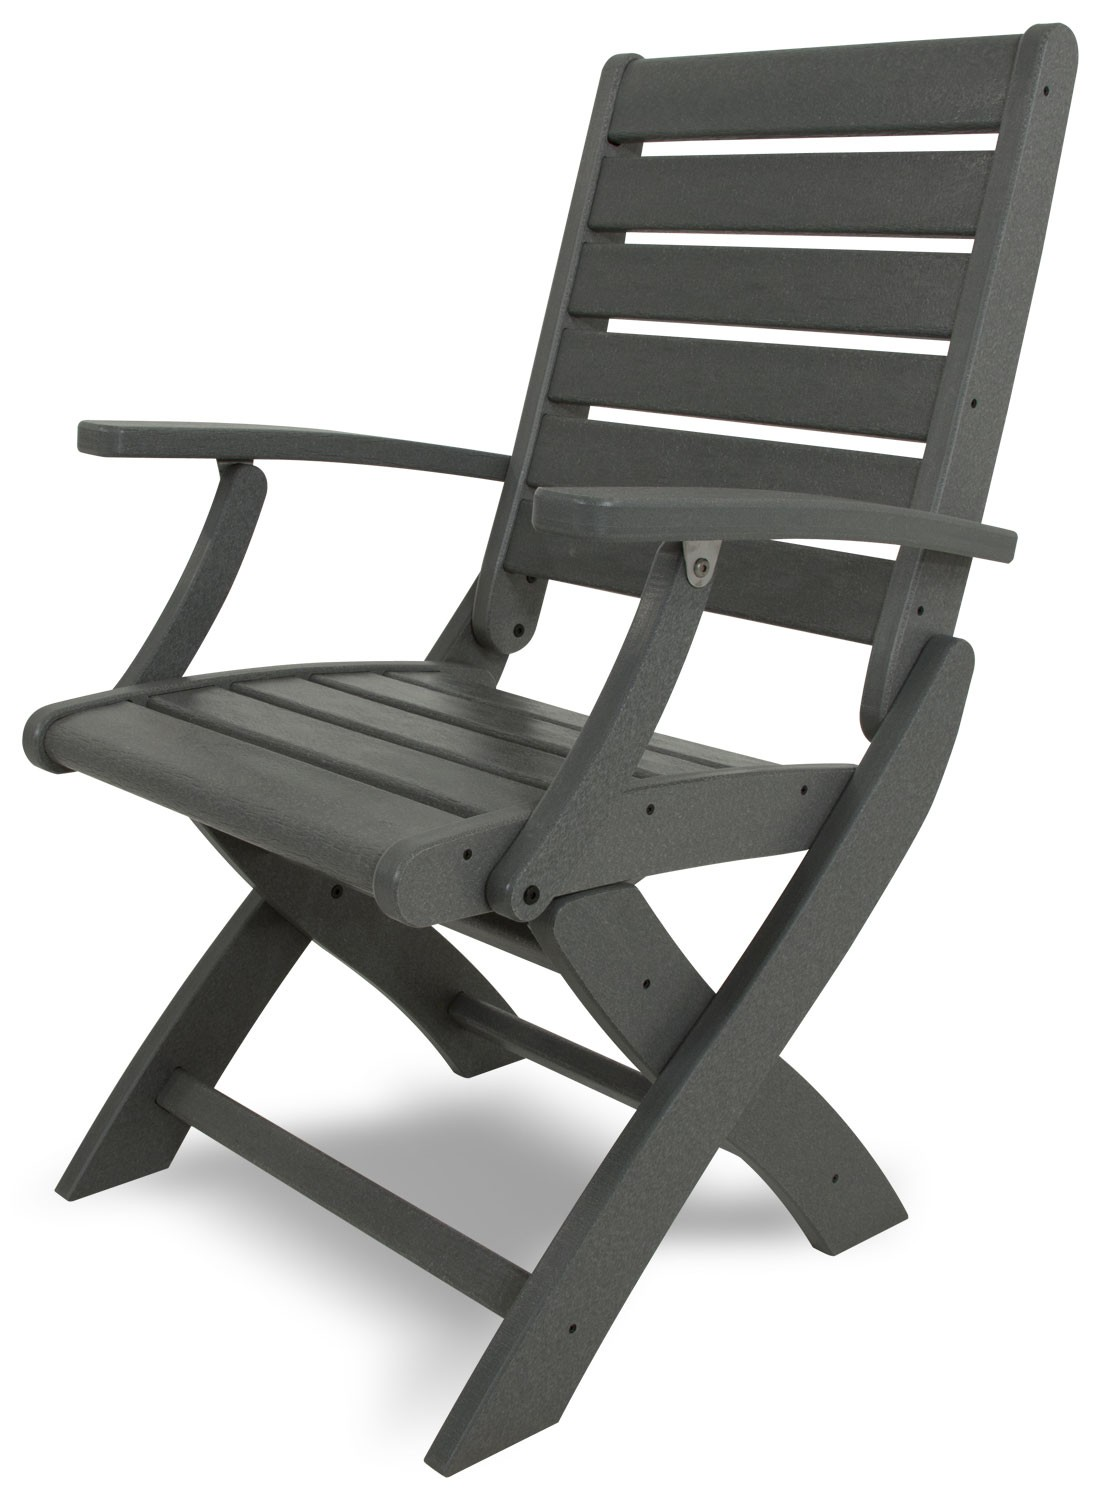 folding chair menards swing stand modern and contemporary furniture free shipping